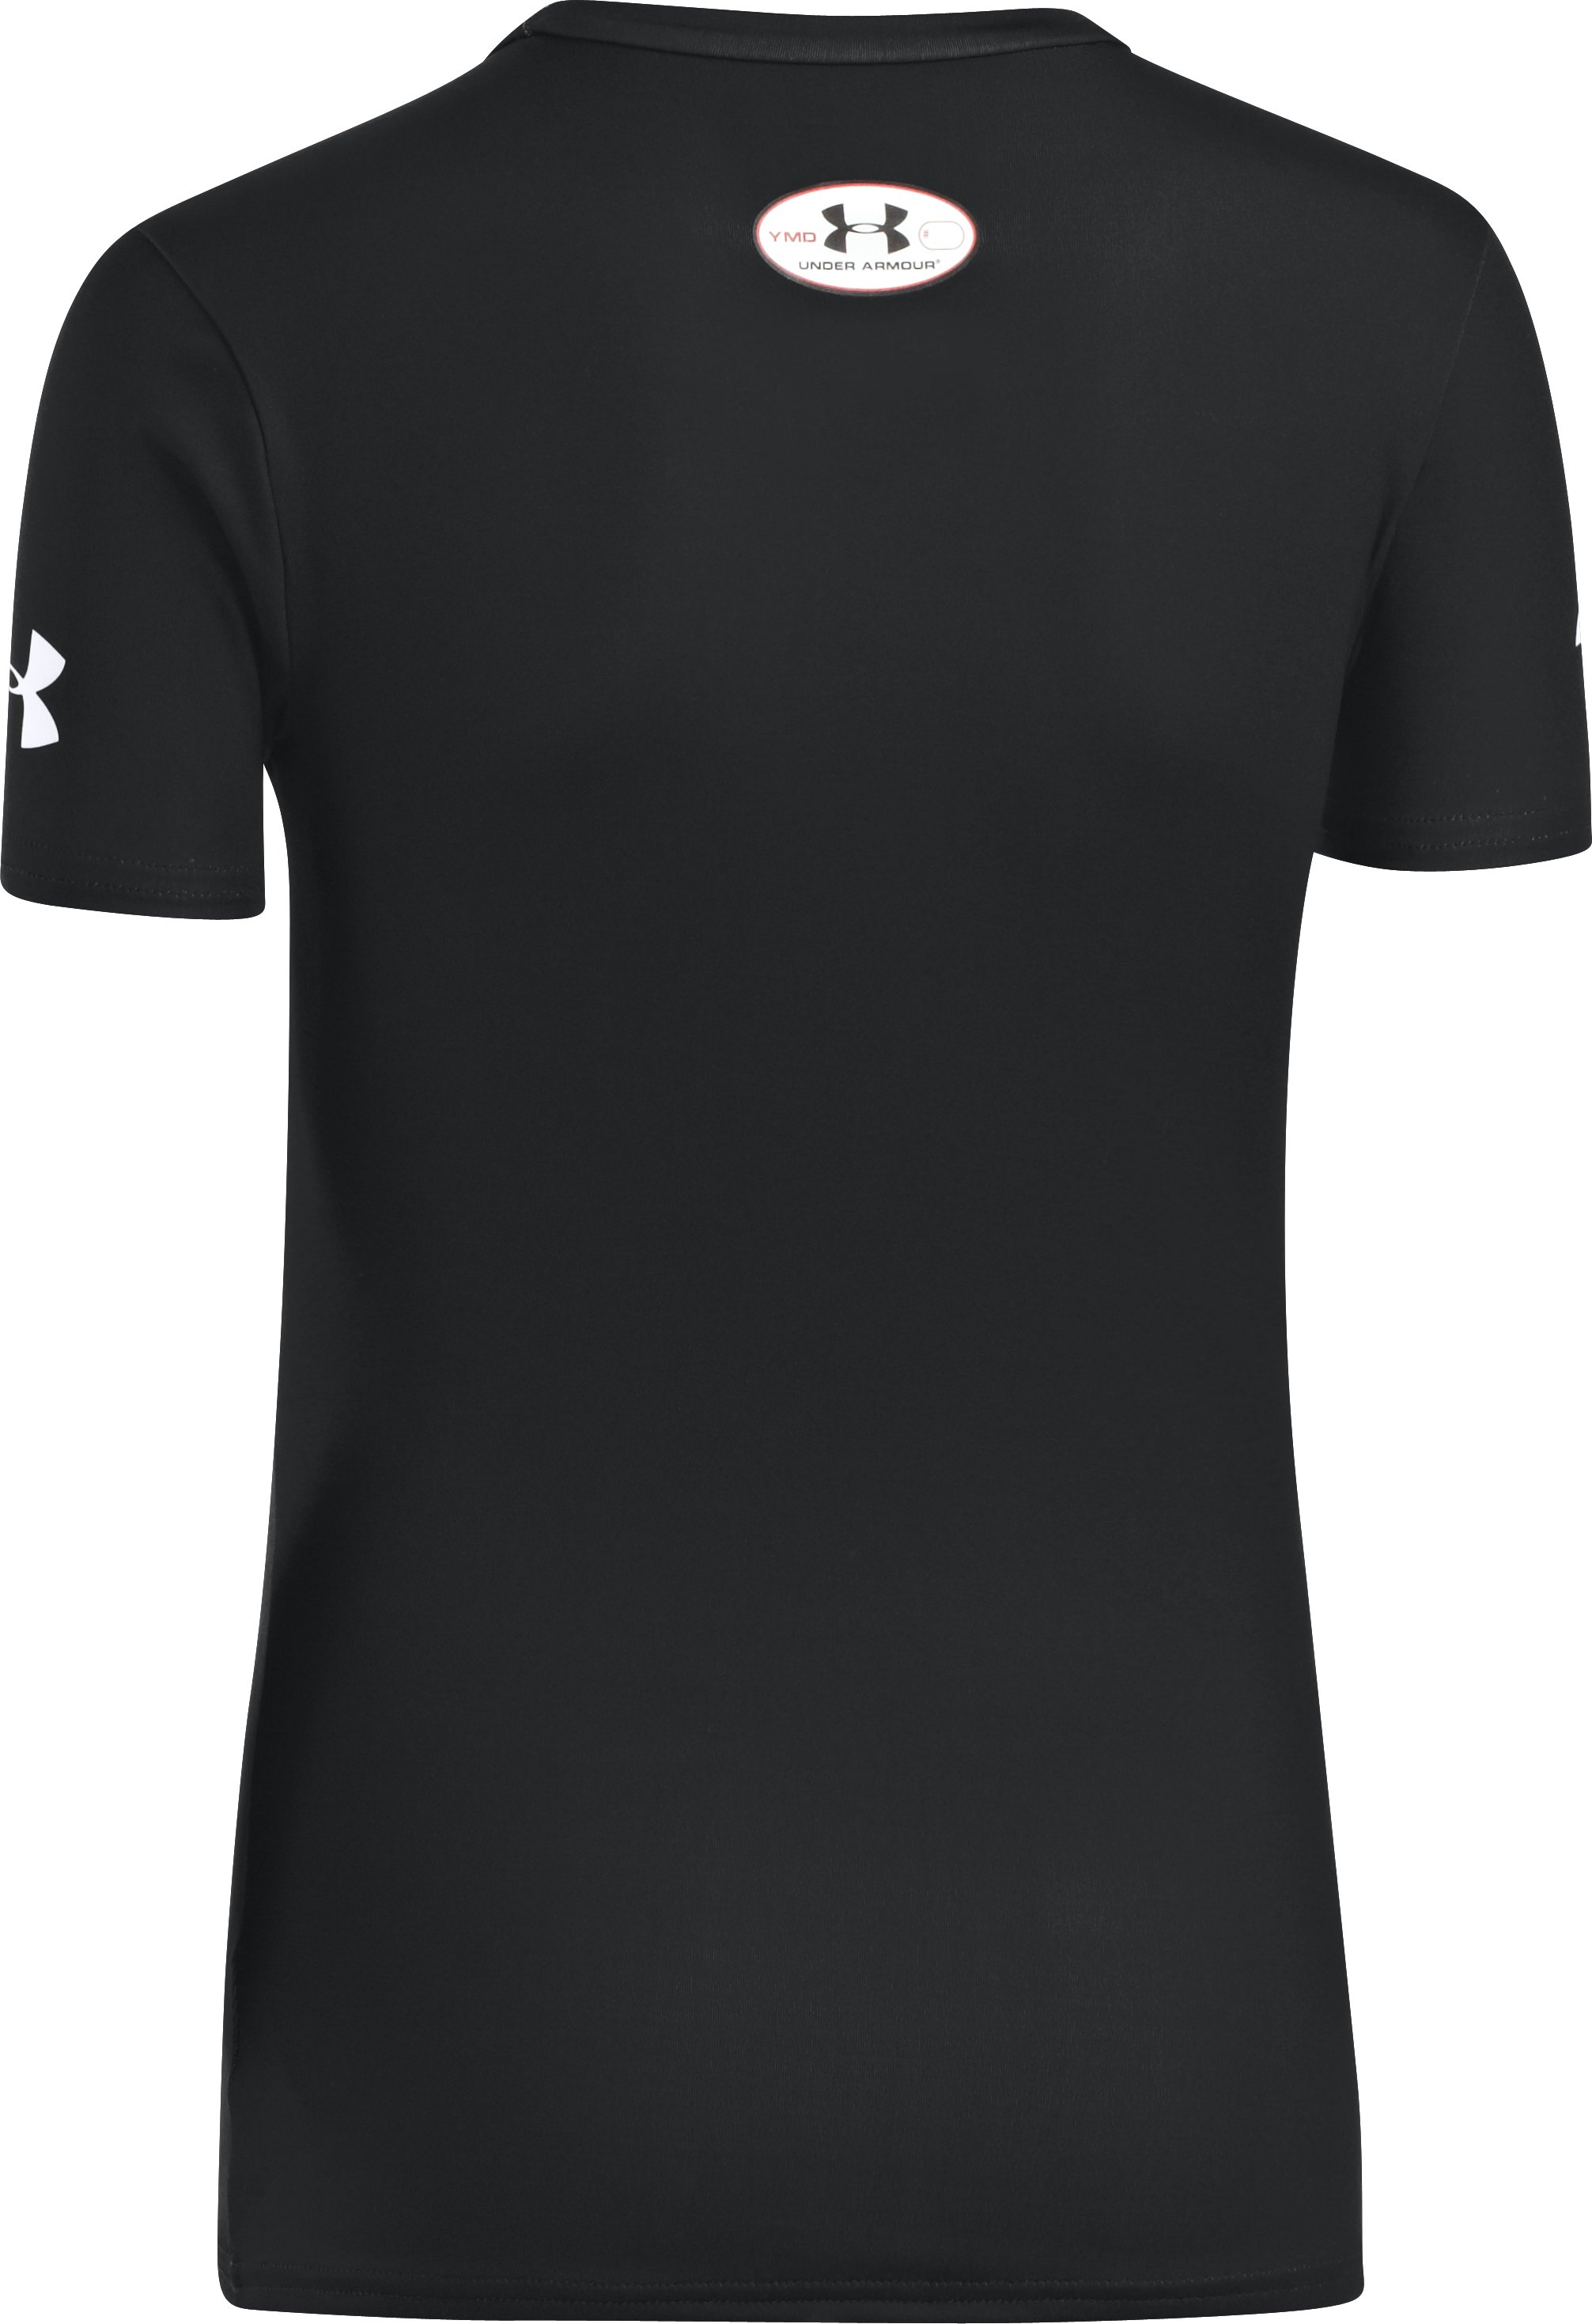 Boys' Under Armour® Alter Ego Fitted Shirt, Black , undefined